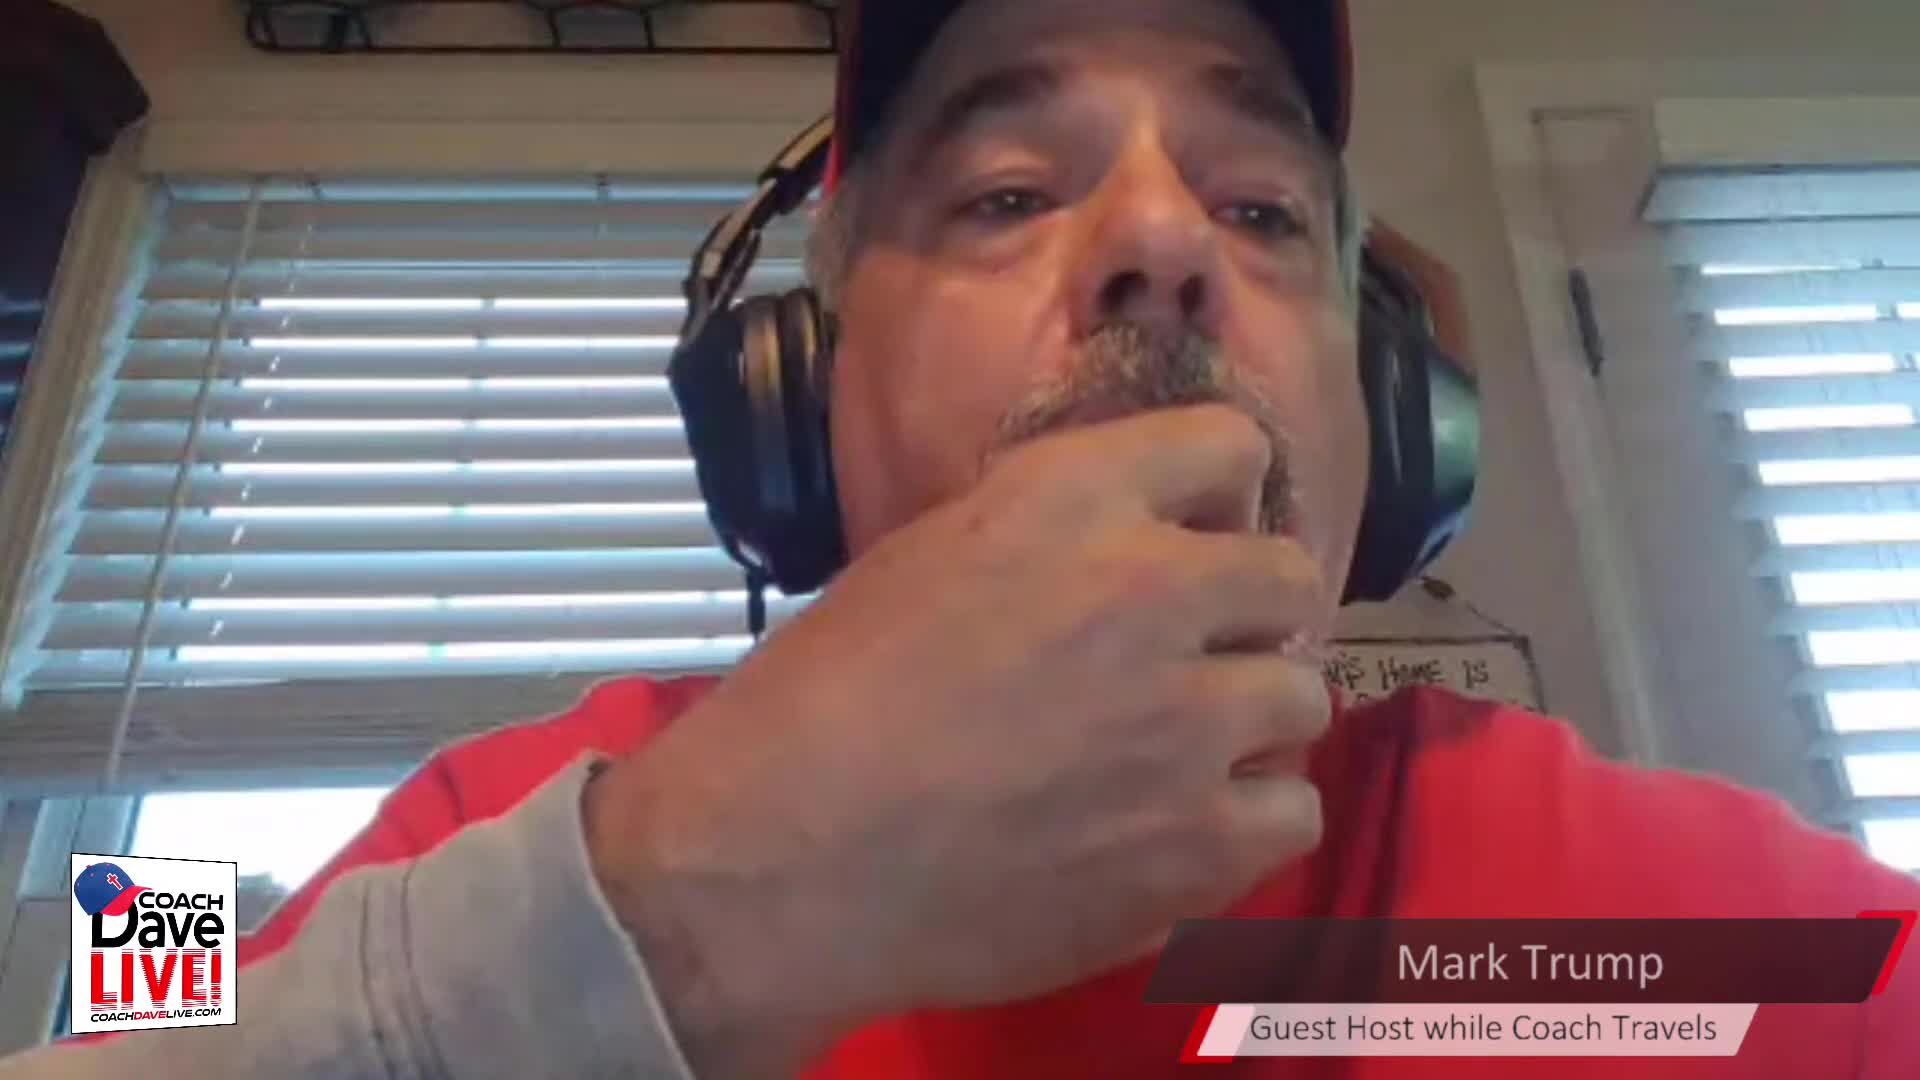 Coach Dave LIVE | 4-9-2021 | GUEST HOST MARK TRUMP: JUDGMENT OF THE WORLD - AUDIO ONLY